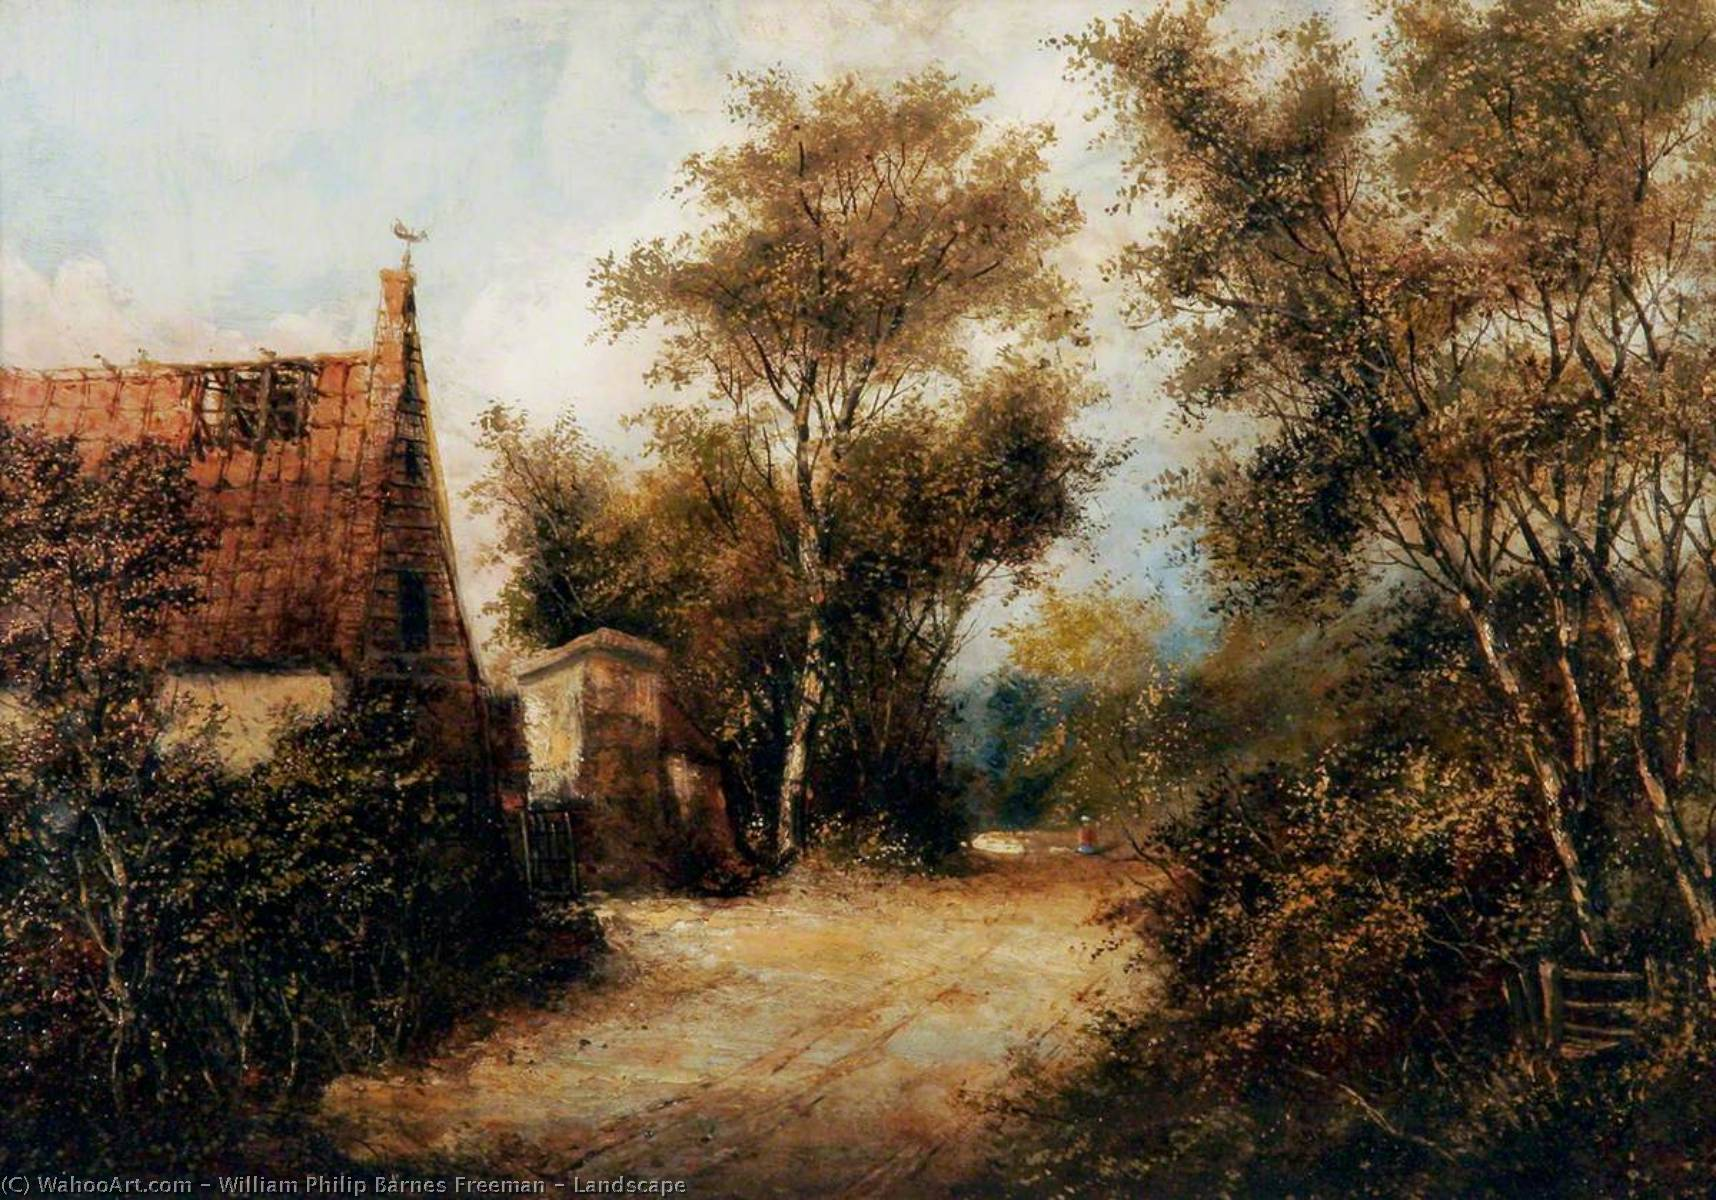 Landscape, Oil by William Philip Barnes Freeman